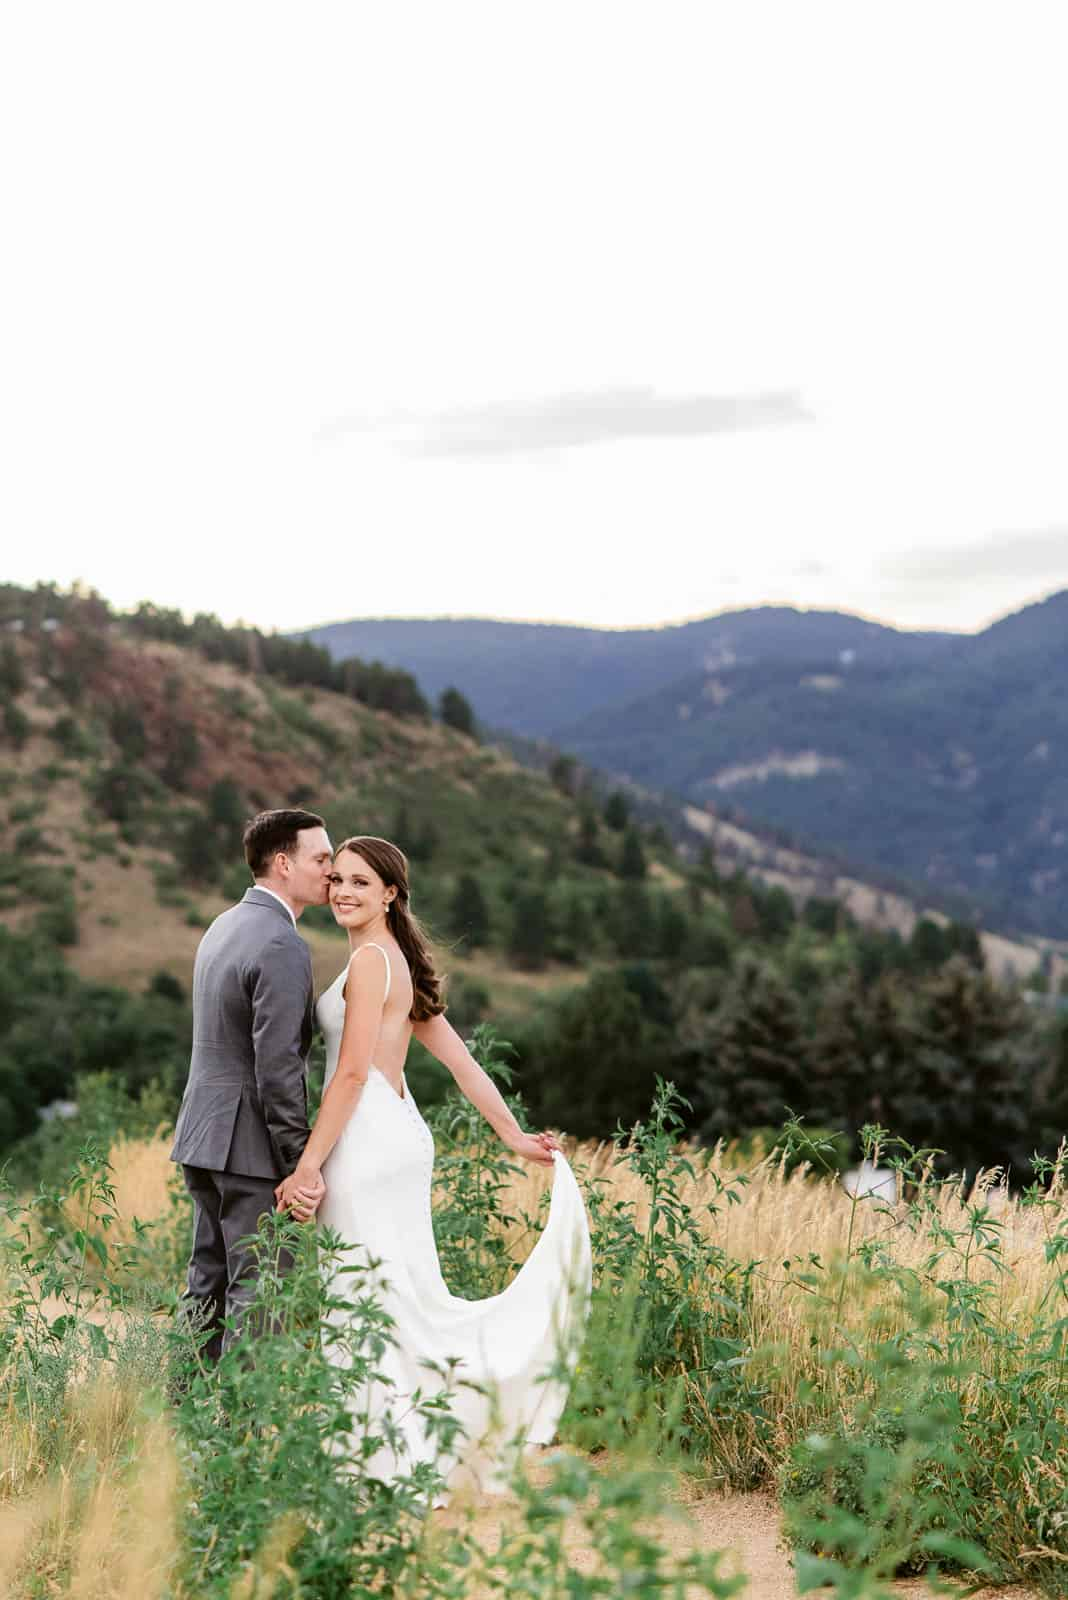 Groom kisses his bride as she looks back at the camera during their wedding photos at Chautauqua Park in Boulder, Colorado. Chautauqua Park is one of the best photo locations near Denver for engagement, elopements, and weddings.